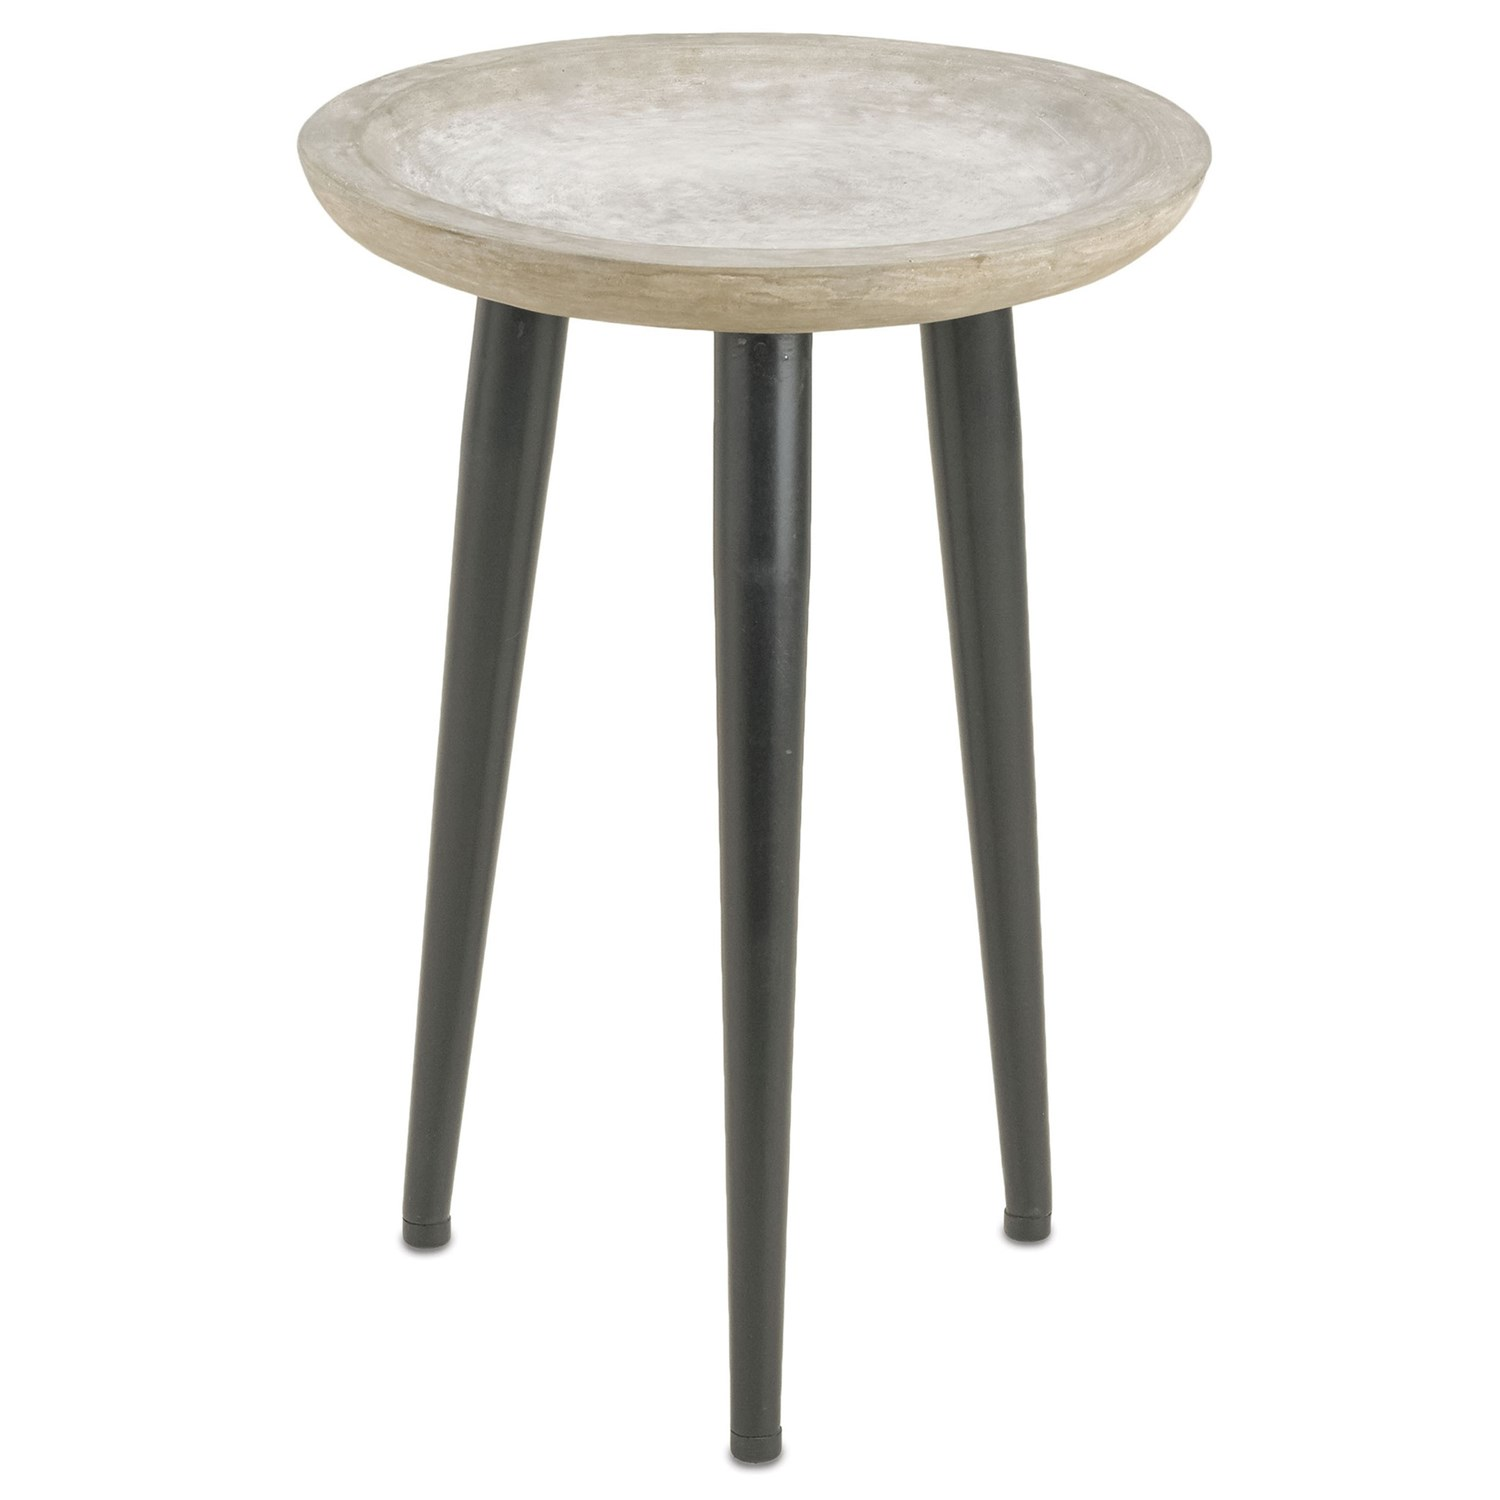 small accent bench furniture america low table round west elm dining set kids lighting modern home black wood coffee vintage metal legs cocktail frosted glass end asian lamps bar